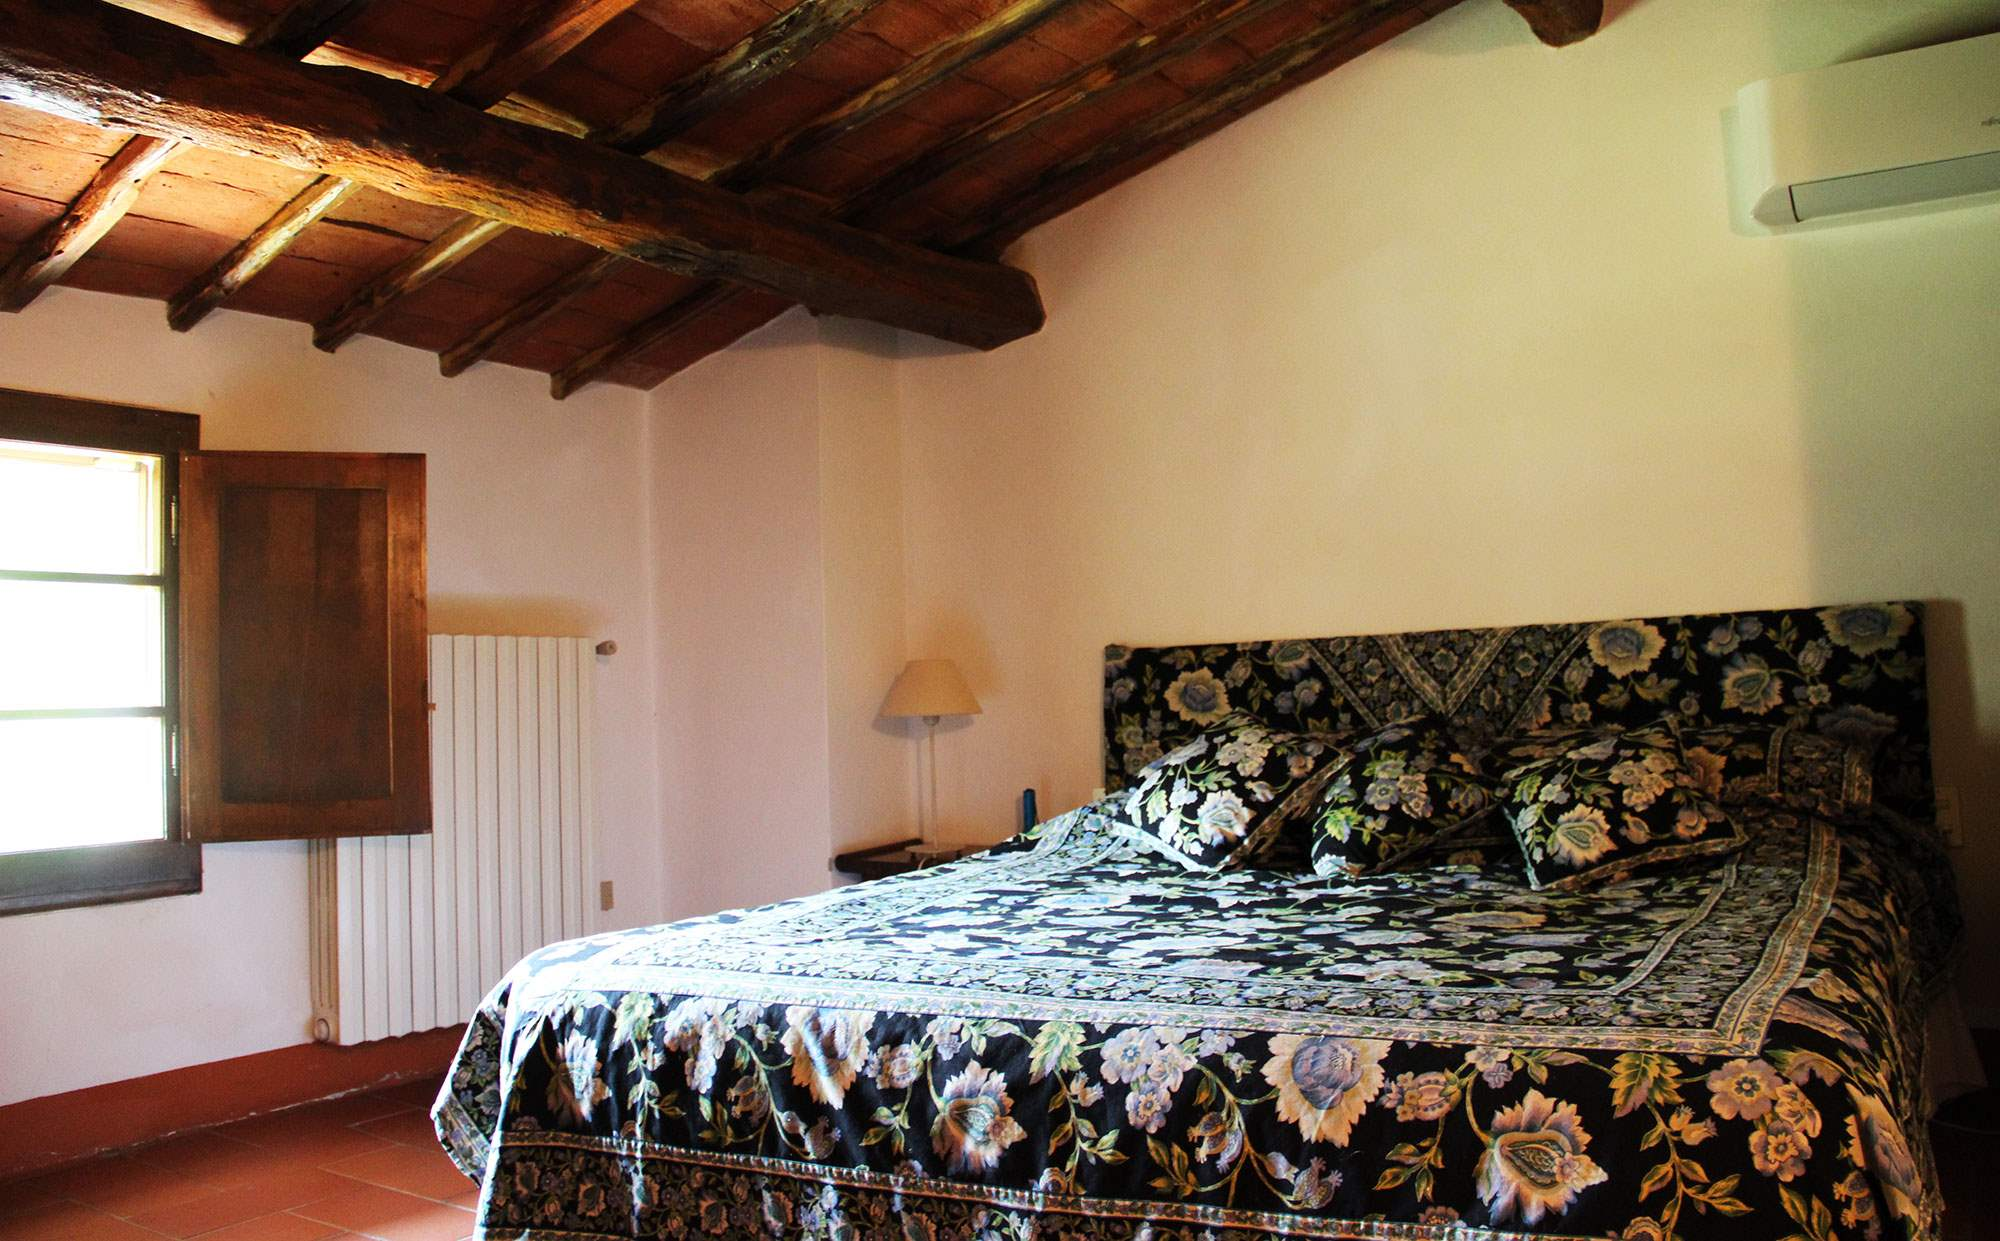 Villa Felicita, Main house and apartment, 10 persons rate, 5 bedroom villa in Chianti & Countryside, Tuscany Photo #26